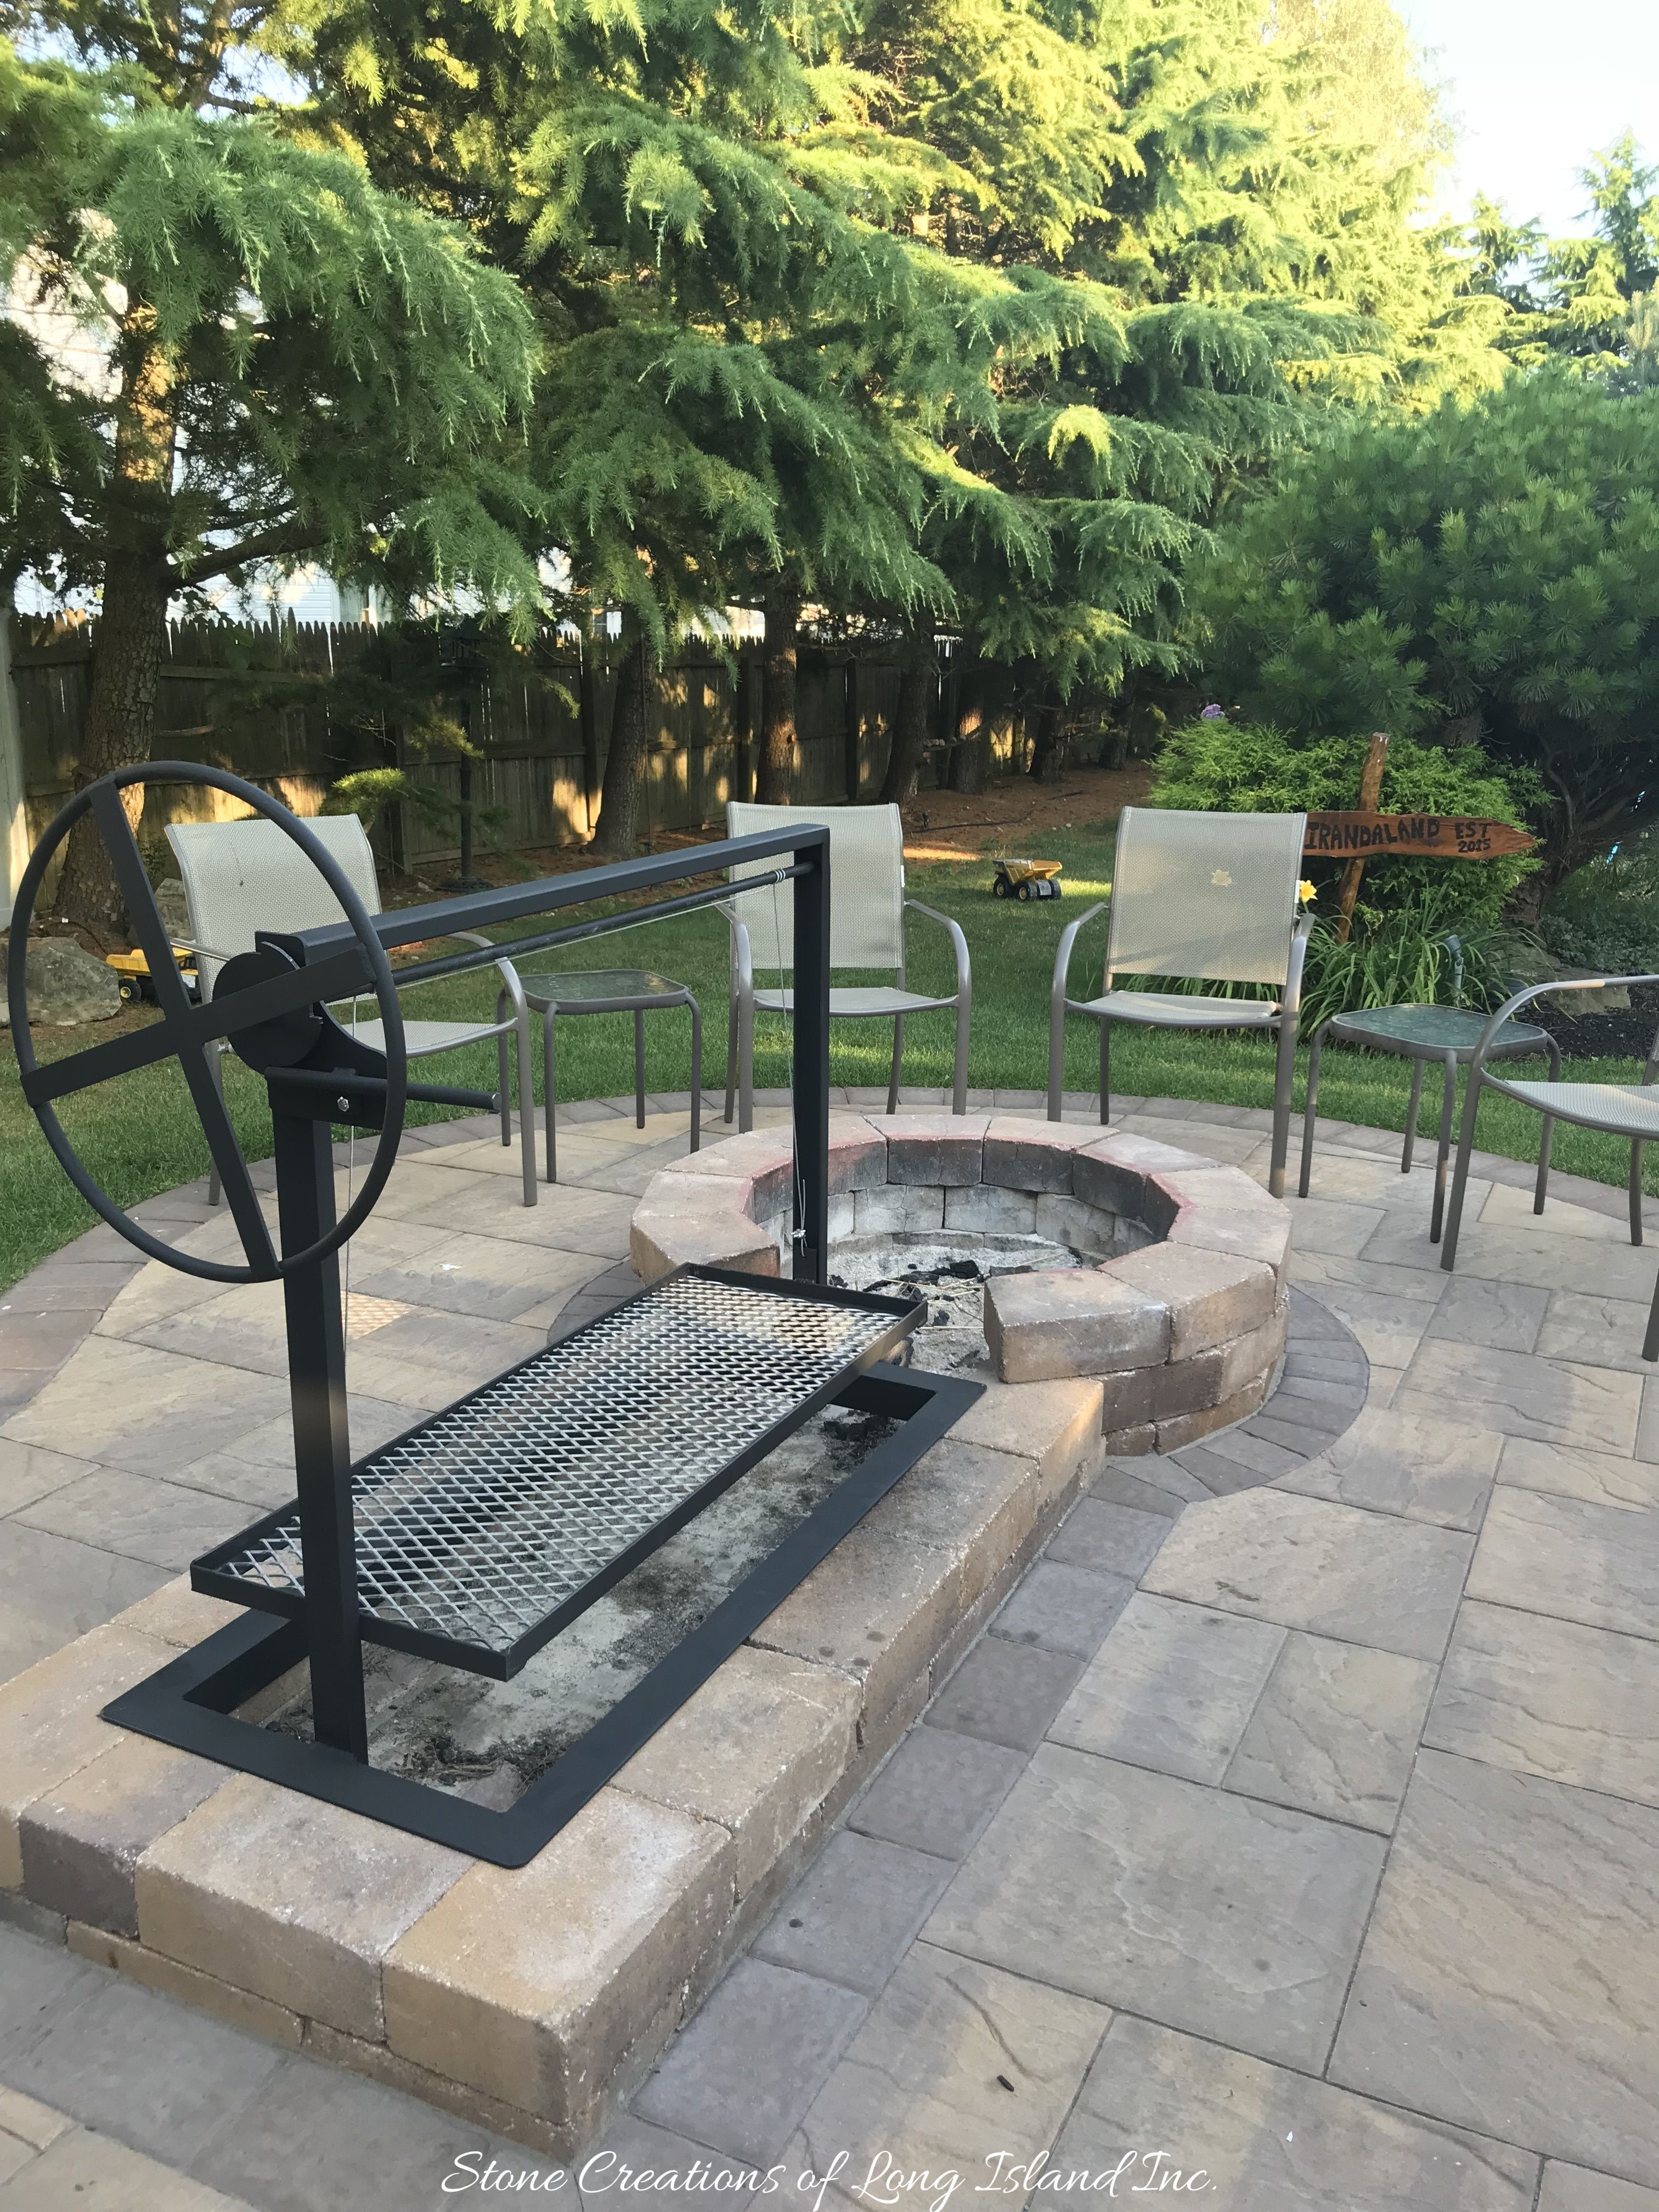 Argentinian Parilla Grill Built With Cambridge Pavers For Wood Or Charcoal Grilling Adjustable Grill Slanted Backyard Bbq Pit Fire Pit Backyard Fire Pit Bbq